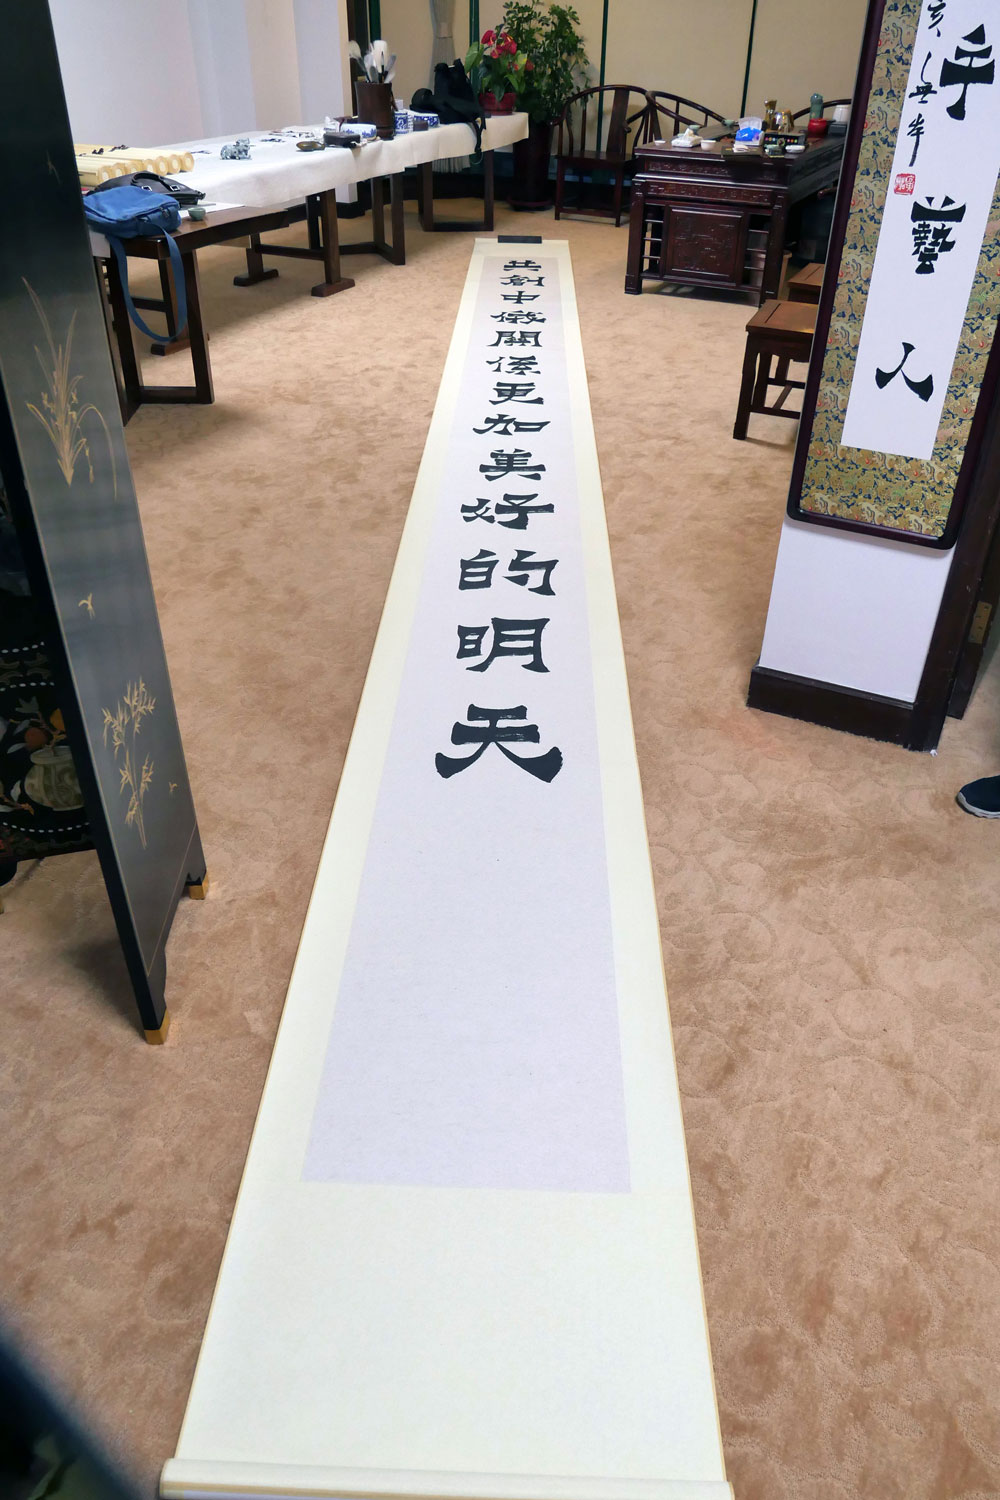 Museum representative met with renowned calligraphers in Beijing